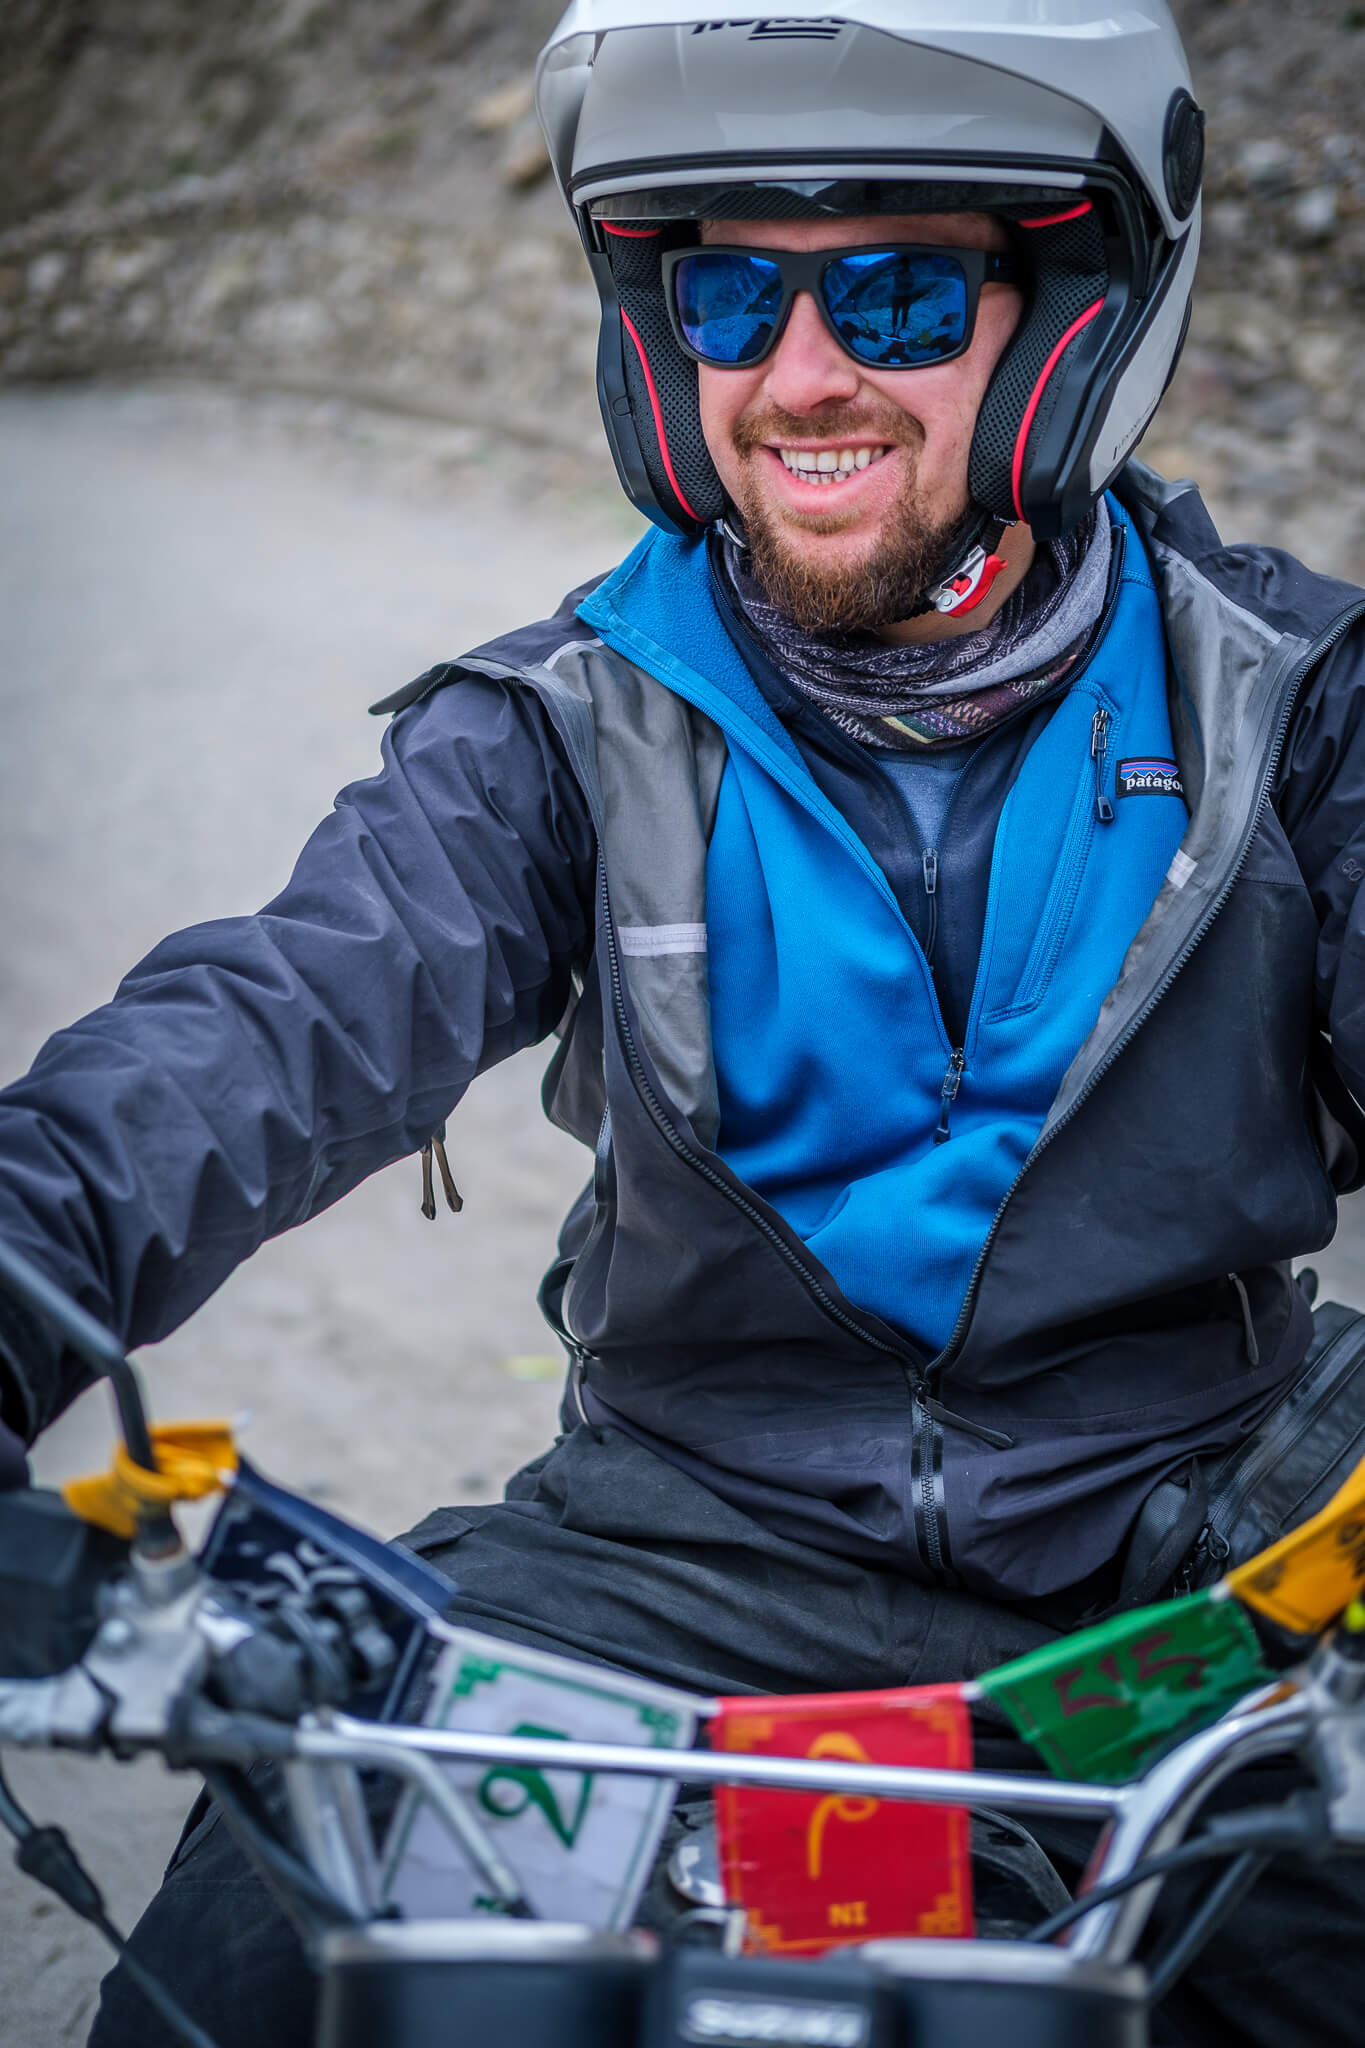 Will looking very happy on his bike in Pakistan